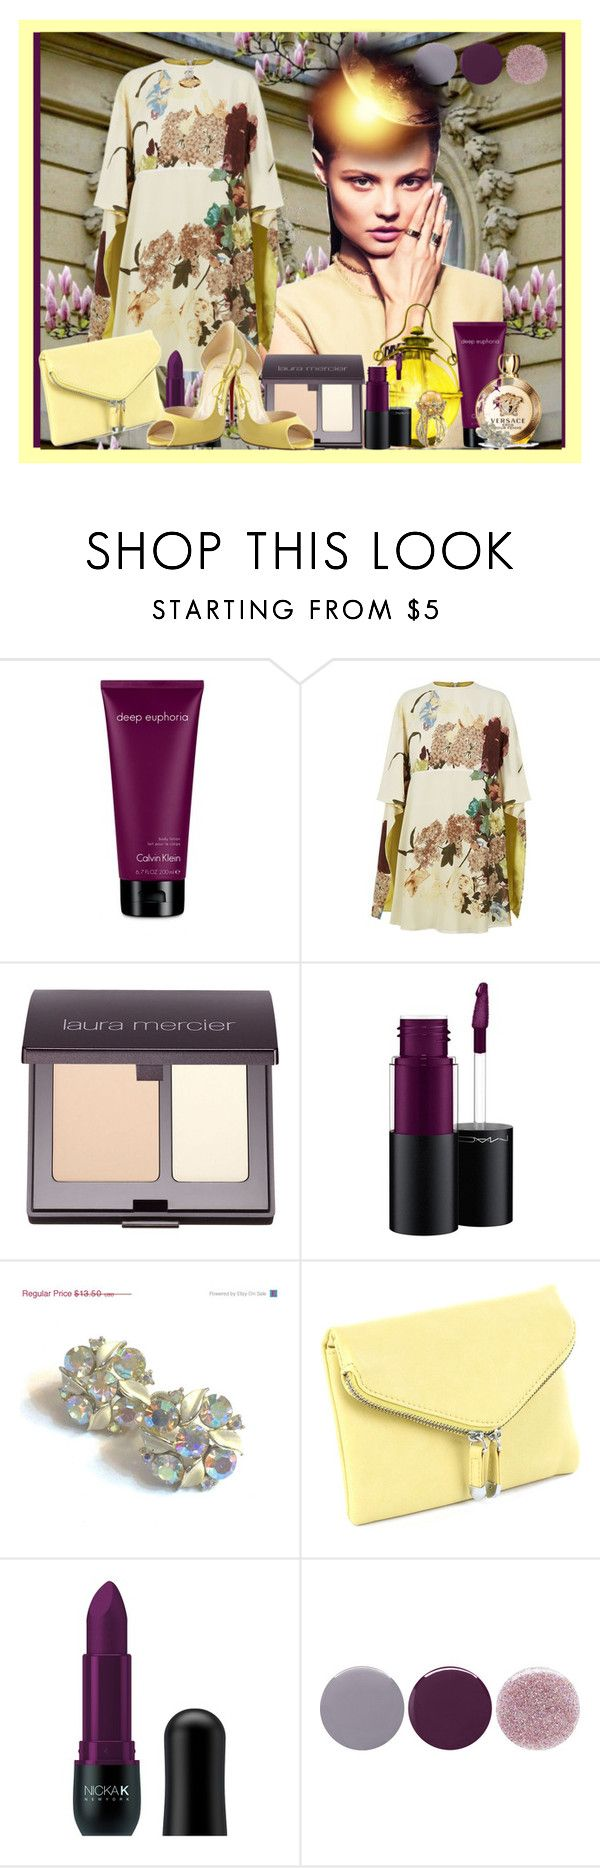 """Untitled 1451"" by ceca-66 ❤ liked on Polyvore featuring Calvin Klein, Versace, Valentino, Laura Mercier, MAC Cosmetics, Nicka K and Smith & Cult"